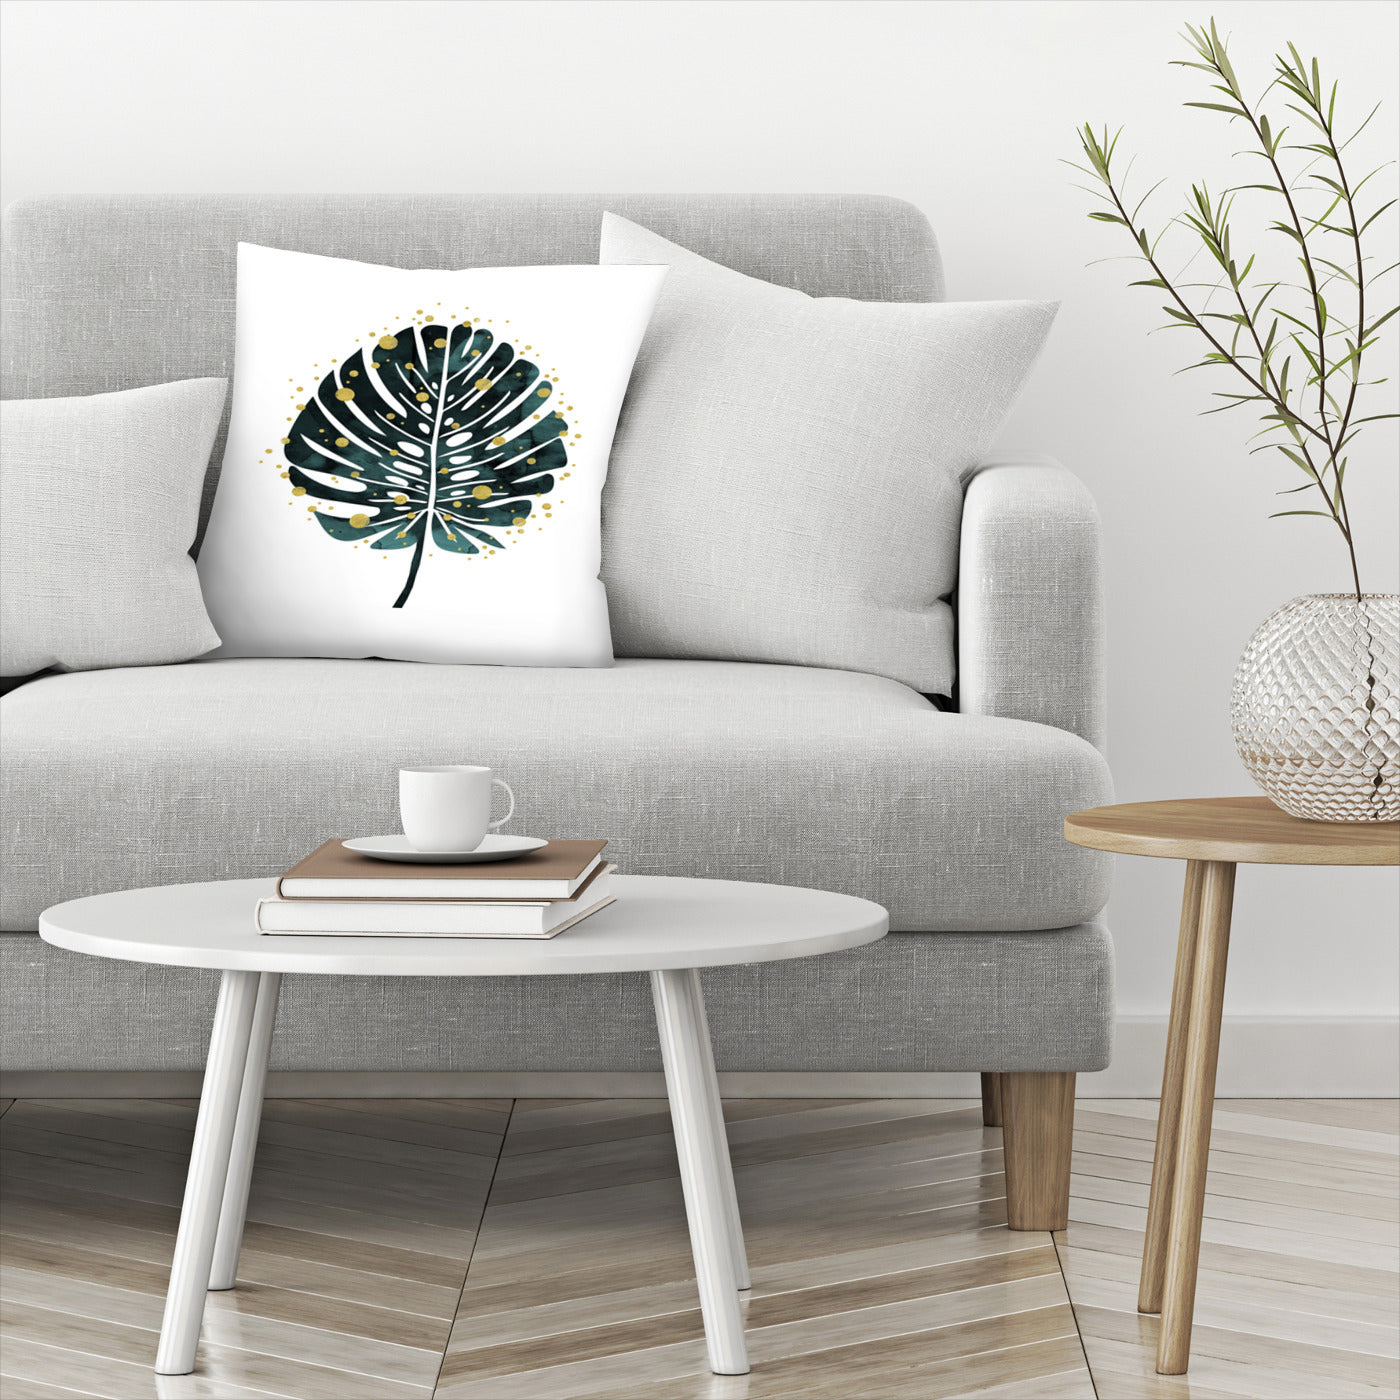 Holiday Monstera by Emanuela Carratoni Decorative Pillow - Decorative Pillow - Americanflat